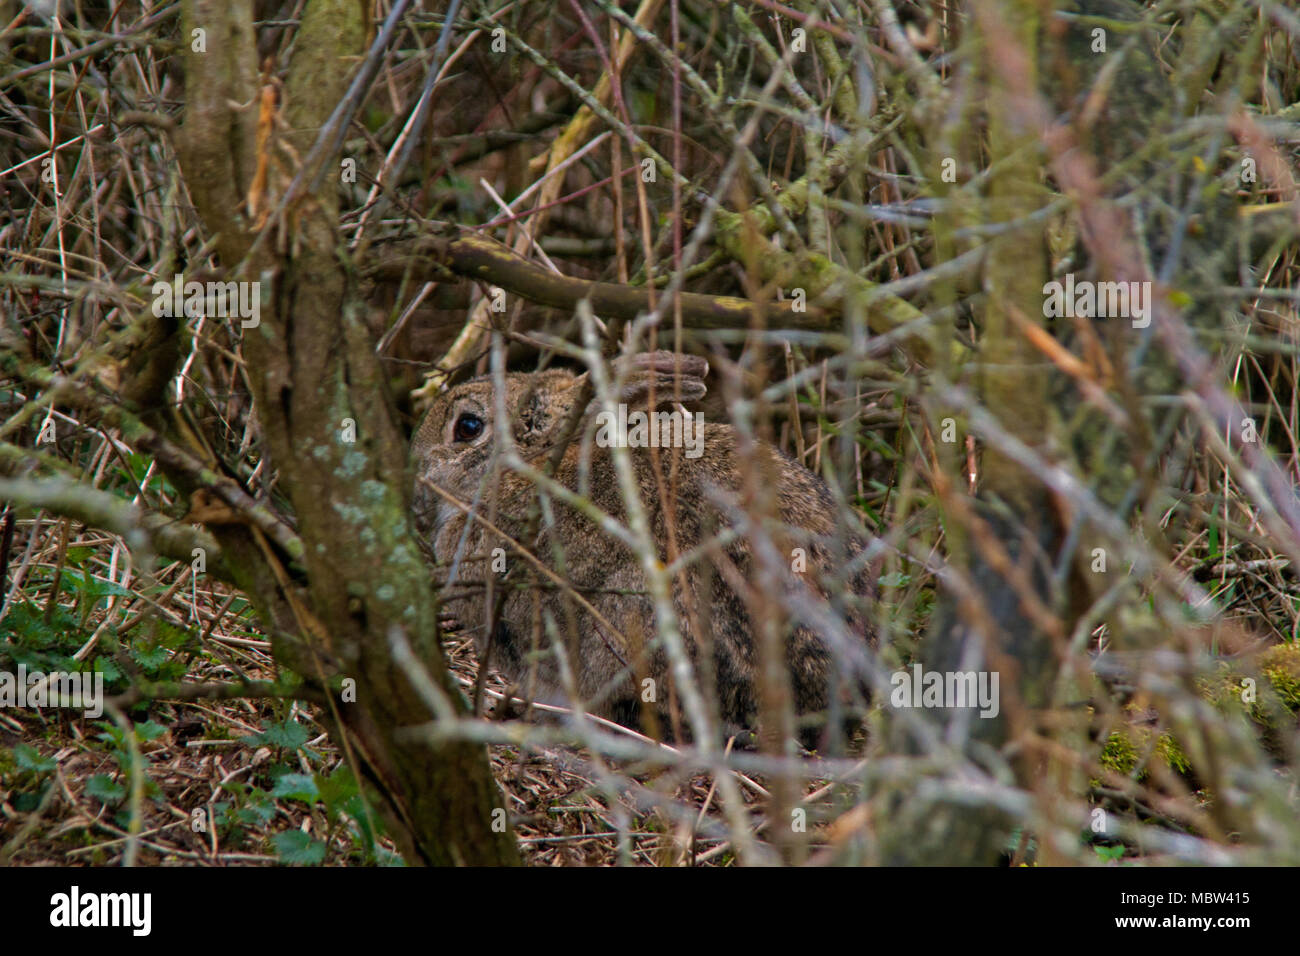 Rabbit with perfect camouflage hiding in the thicket Stock Photo